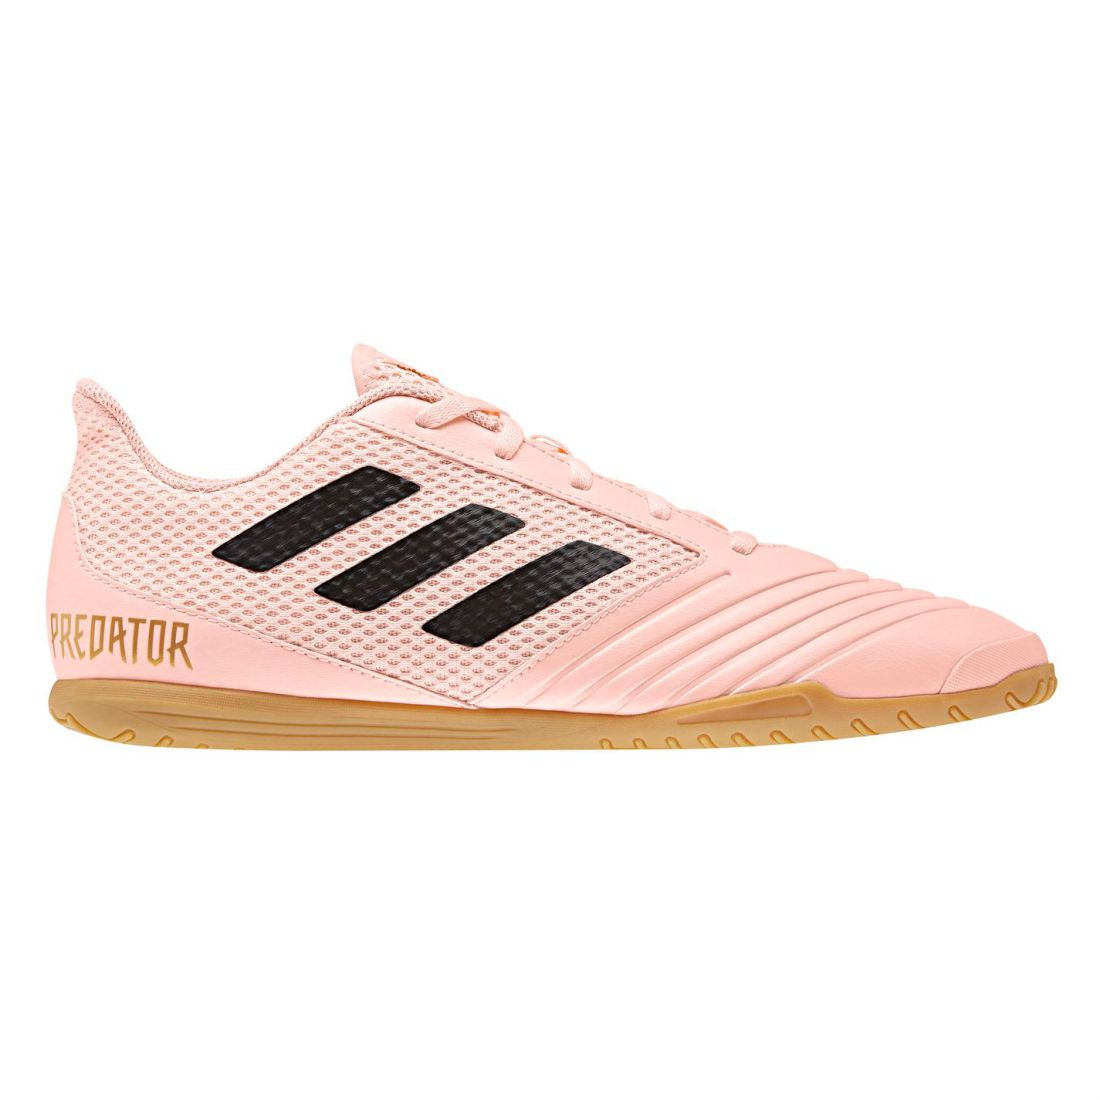 98fca6479fe adidas Mens Predator Tango 18.4 Sala Indoor Football Trainers Boots Lace Up